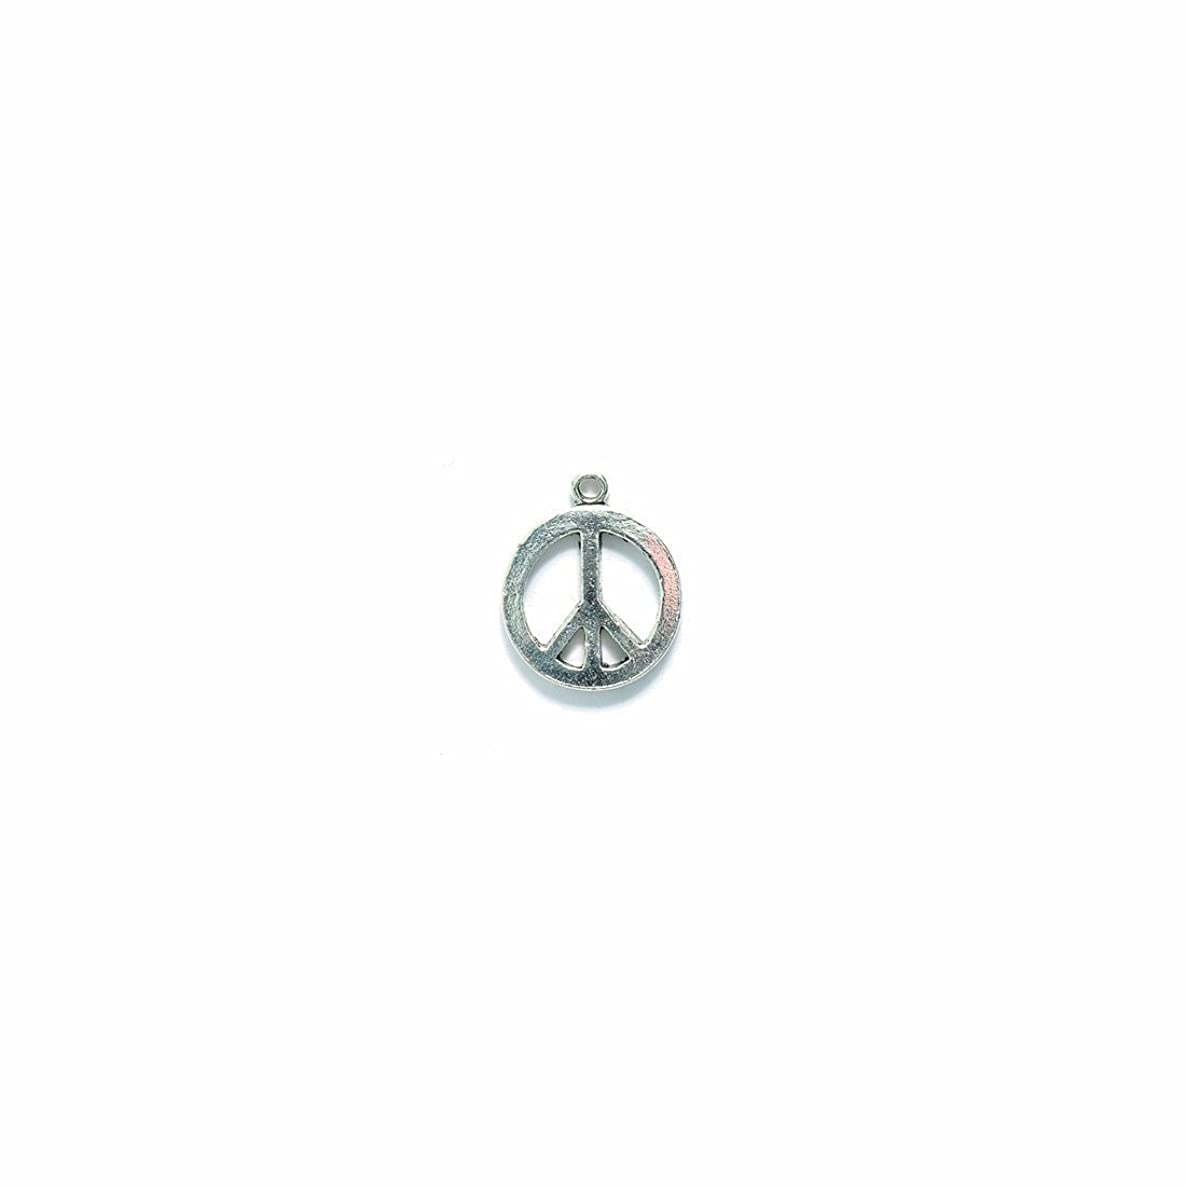 Shipwreck Beads Pewter Peace Sign Charm, Bright Silver, 15mm, 4-Pack